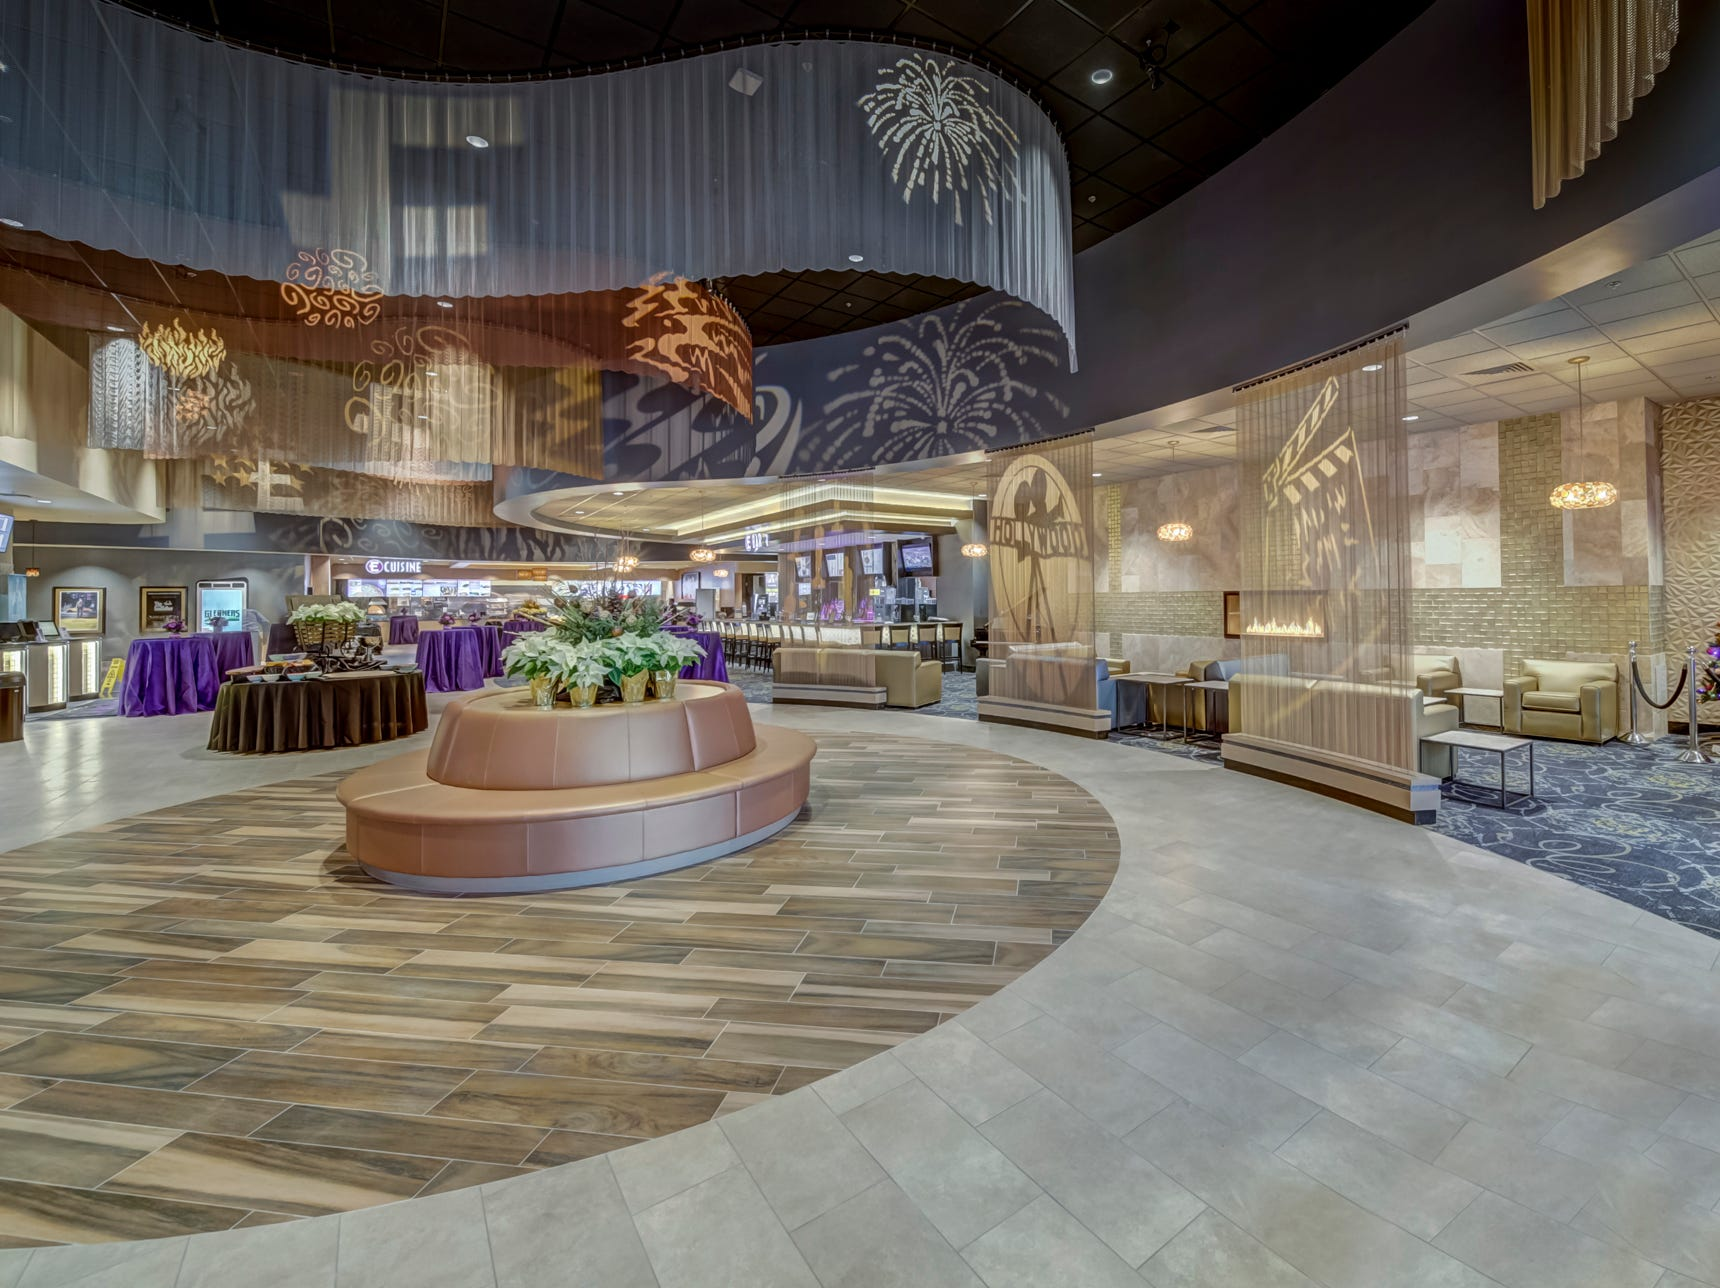 The lobby of Emagine Entertainment's new movie theater Emagine Hartland is shown Friday, Dec. 14, 2018